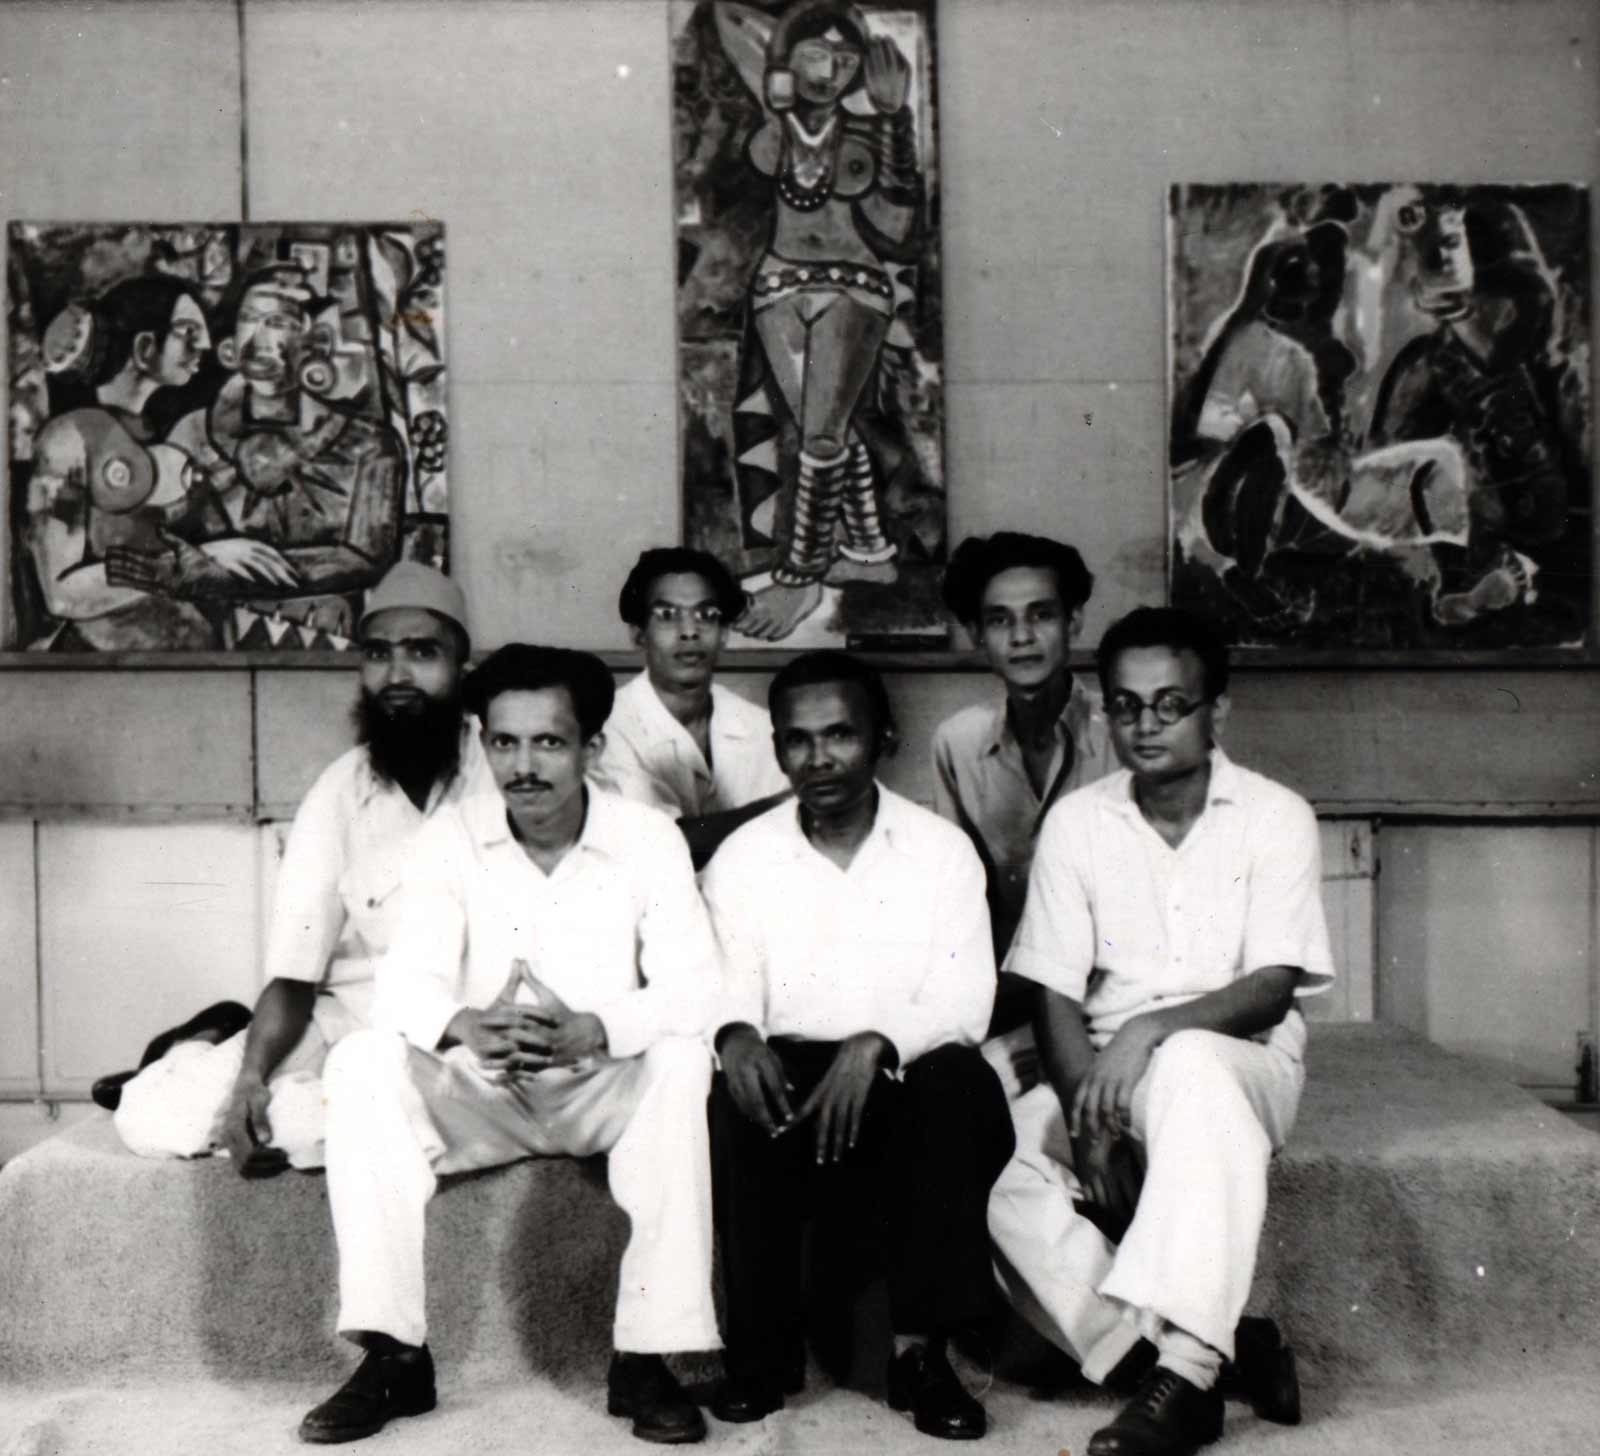 Photo from the Progressive Artists' Group exhibition, featuring (left to right) M. F. Husain, F. N. Souza, S. K. Bakre, K. H. Ara, S. H. Raza, H. A. Gade, 1949